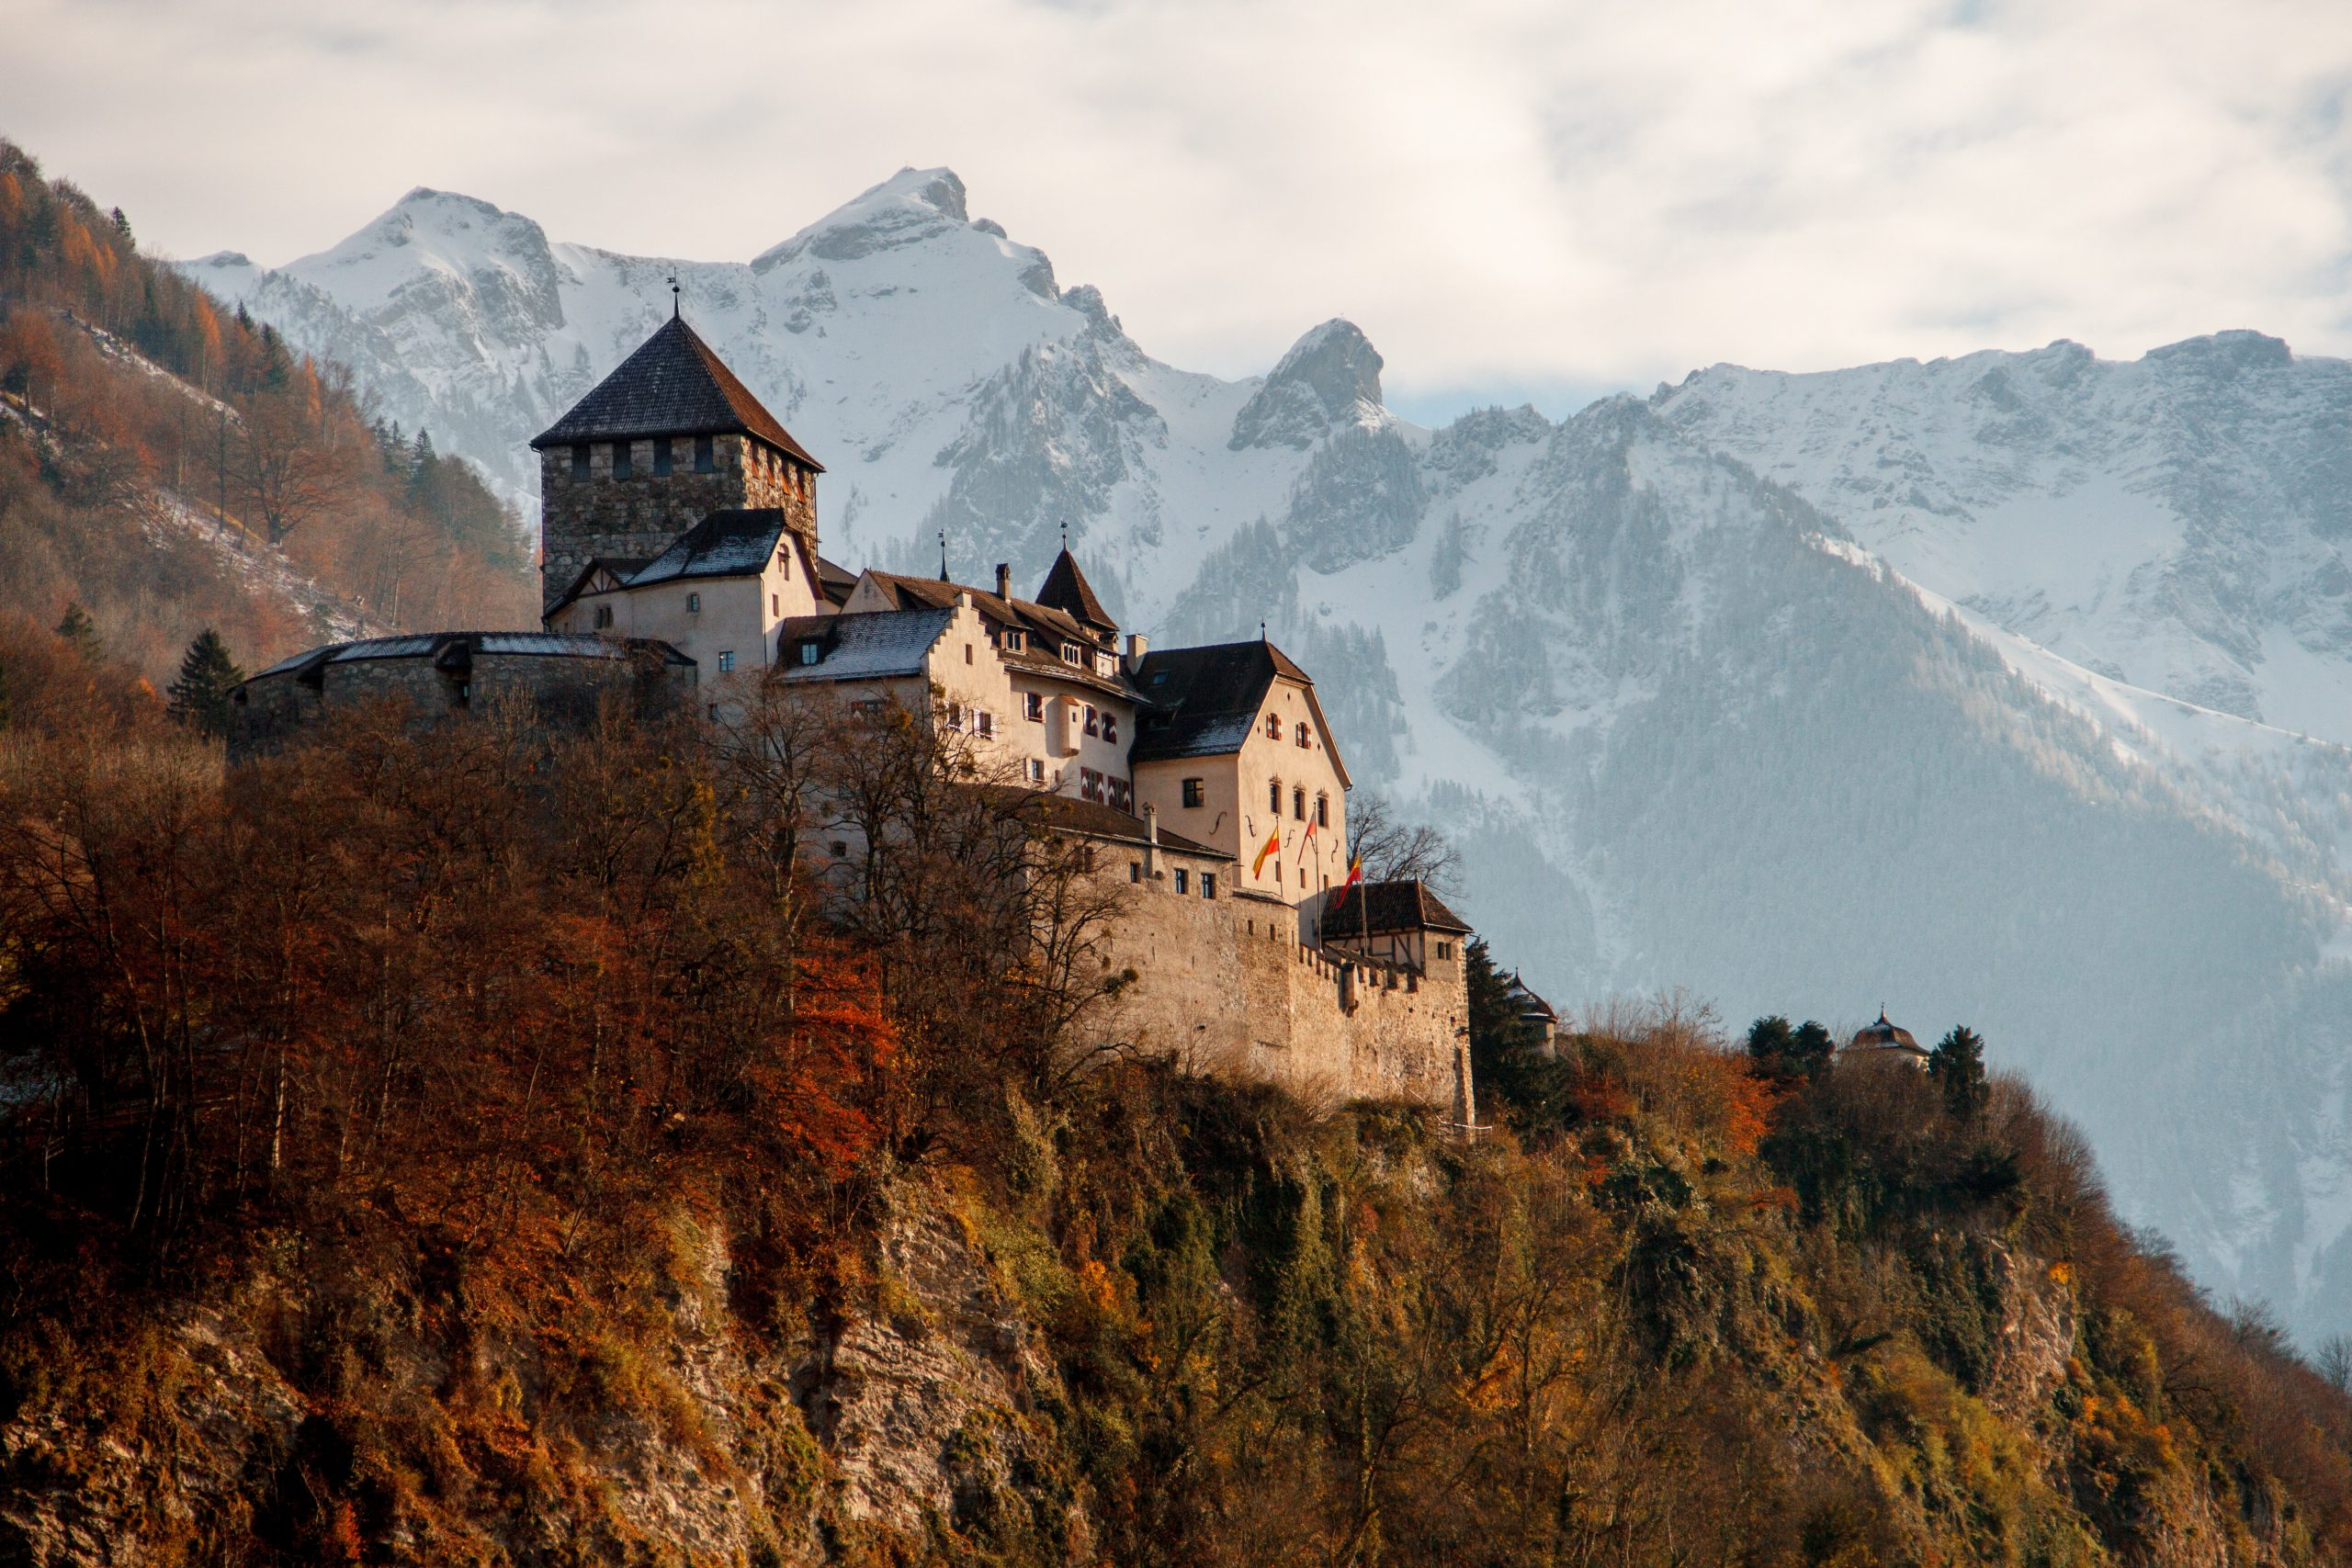 Liechtenstein. Image source: Henrique Ferreira